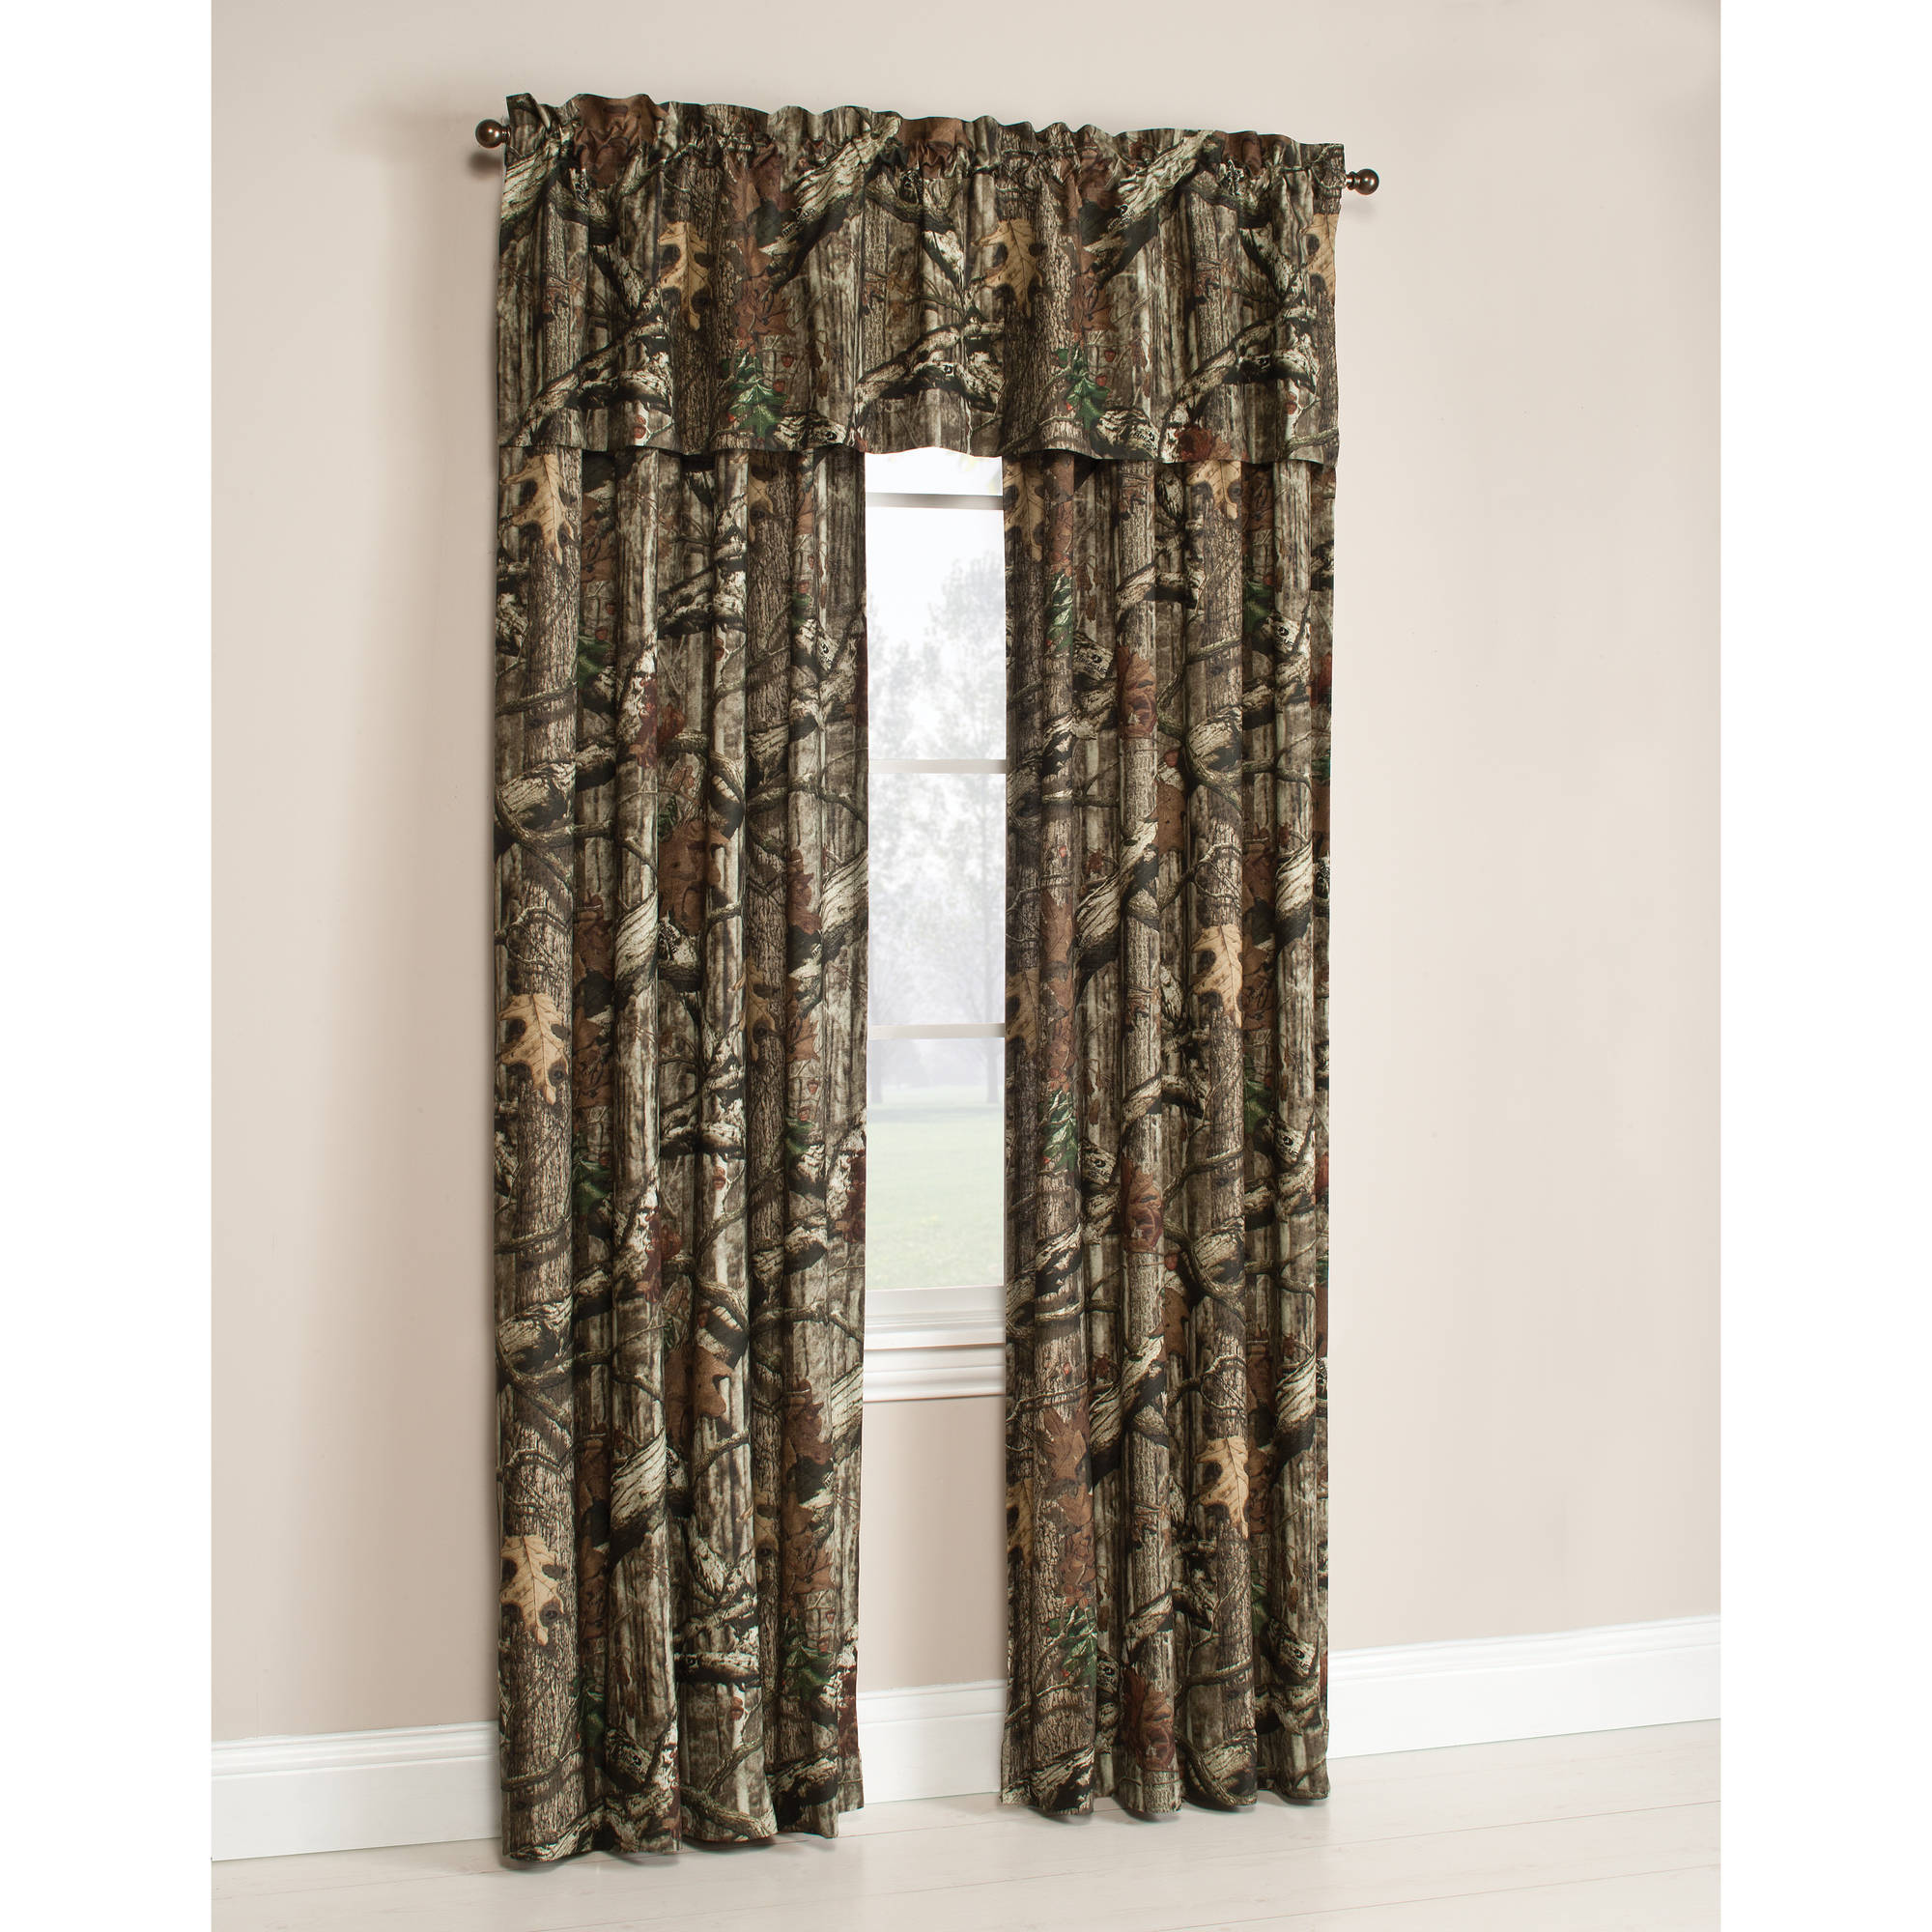 Stunning Mossy Oak Break-Up Infinity Camouflage Print Window Curtain Panels -  Walmart.com camo blackout curtains